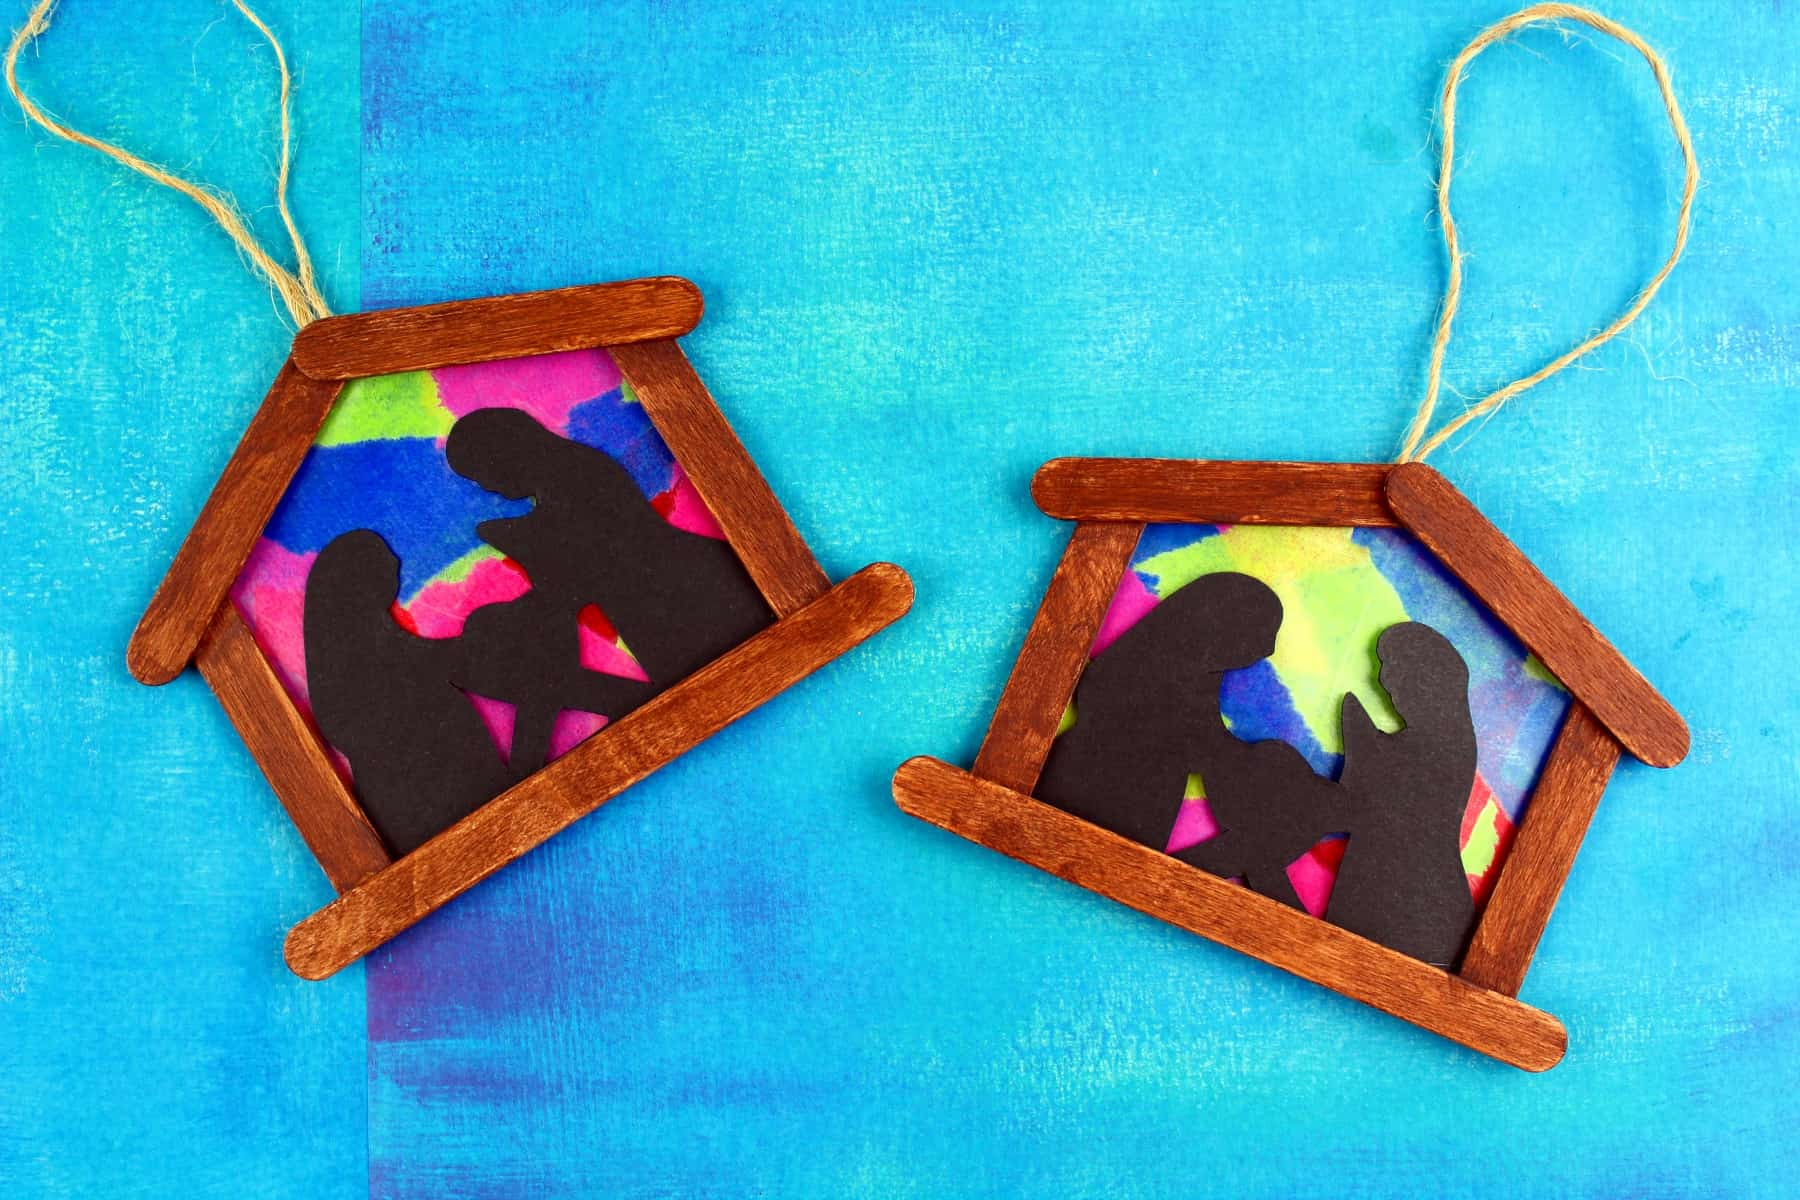 DIY ornaments make excellent keepsake crafts or gifts! These stained glass nativity ornaments are awesome for big kids to complete independently, or great for toddlers as their make the mosaic themselves on a sticky table.